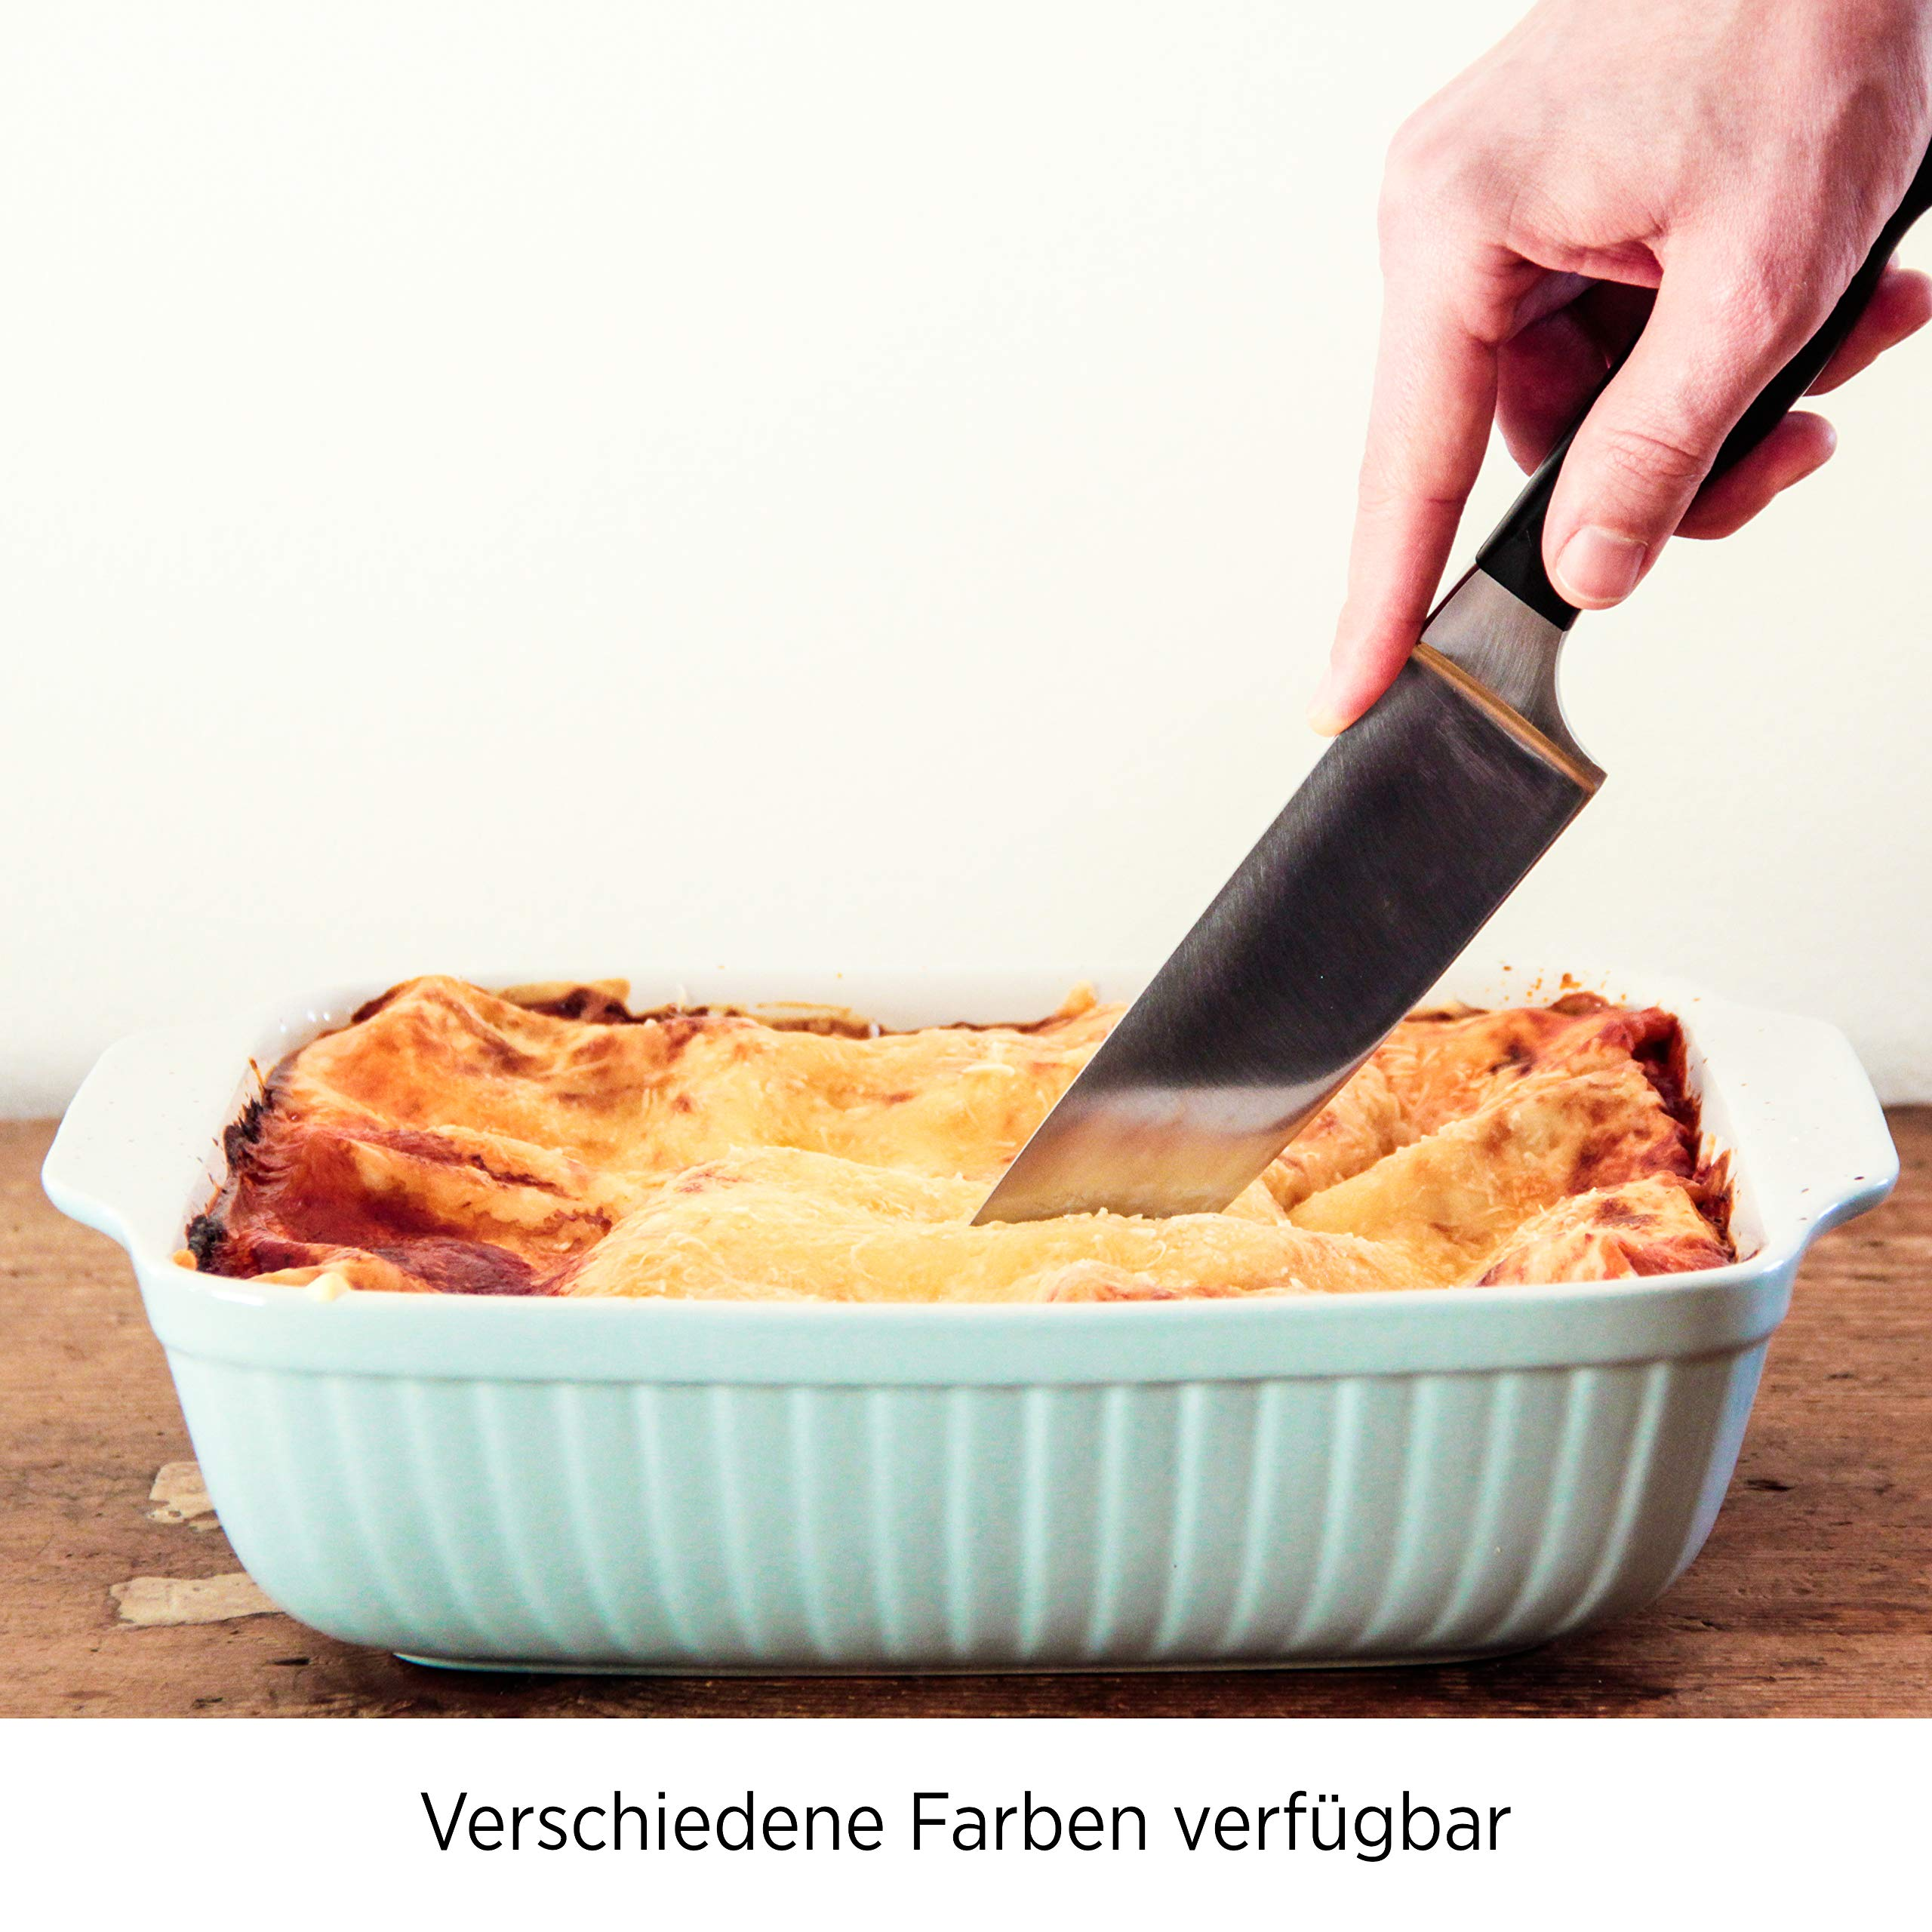 Mäser Kitchen Time 931486 Rectangular Baking Dish for Lasagne, Baking and Tiramisu Mould, Scratch and Cut-Resistant Square Oven Dish Ceramic by Mäser (Image #4)